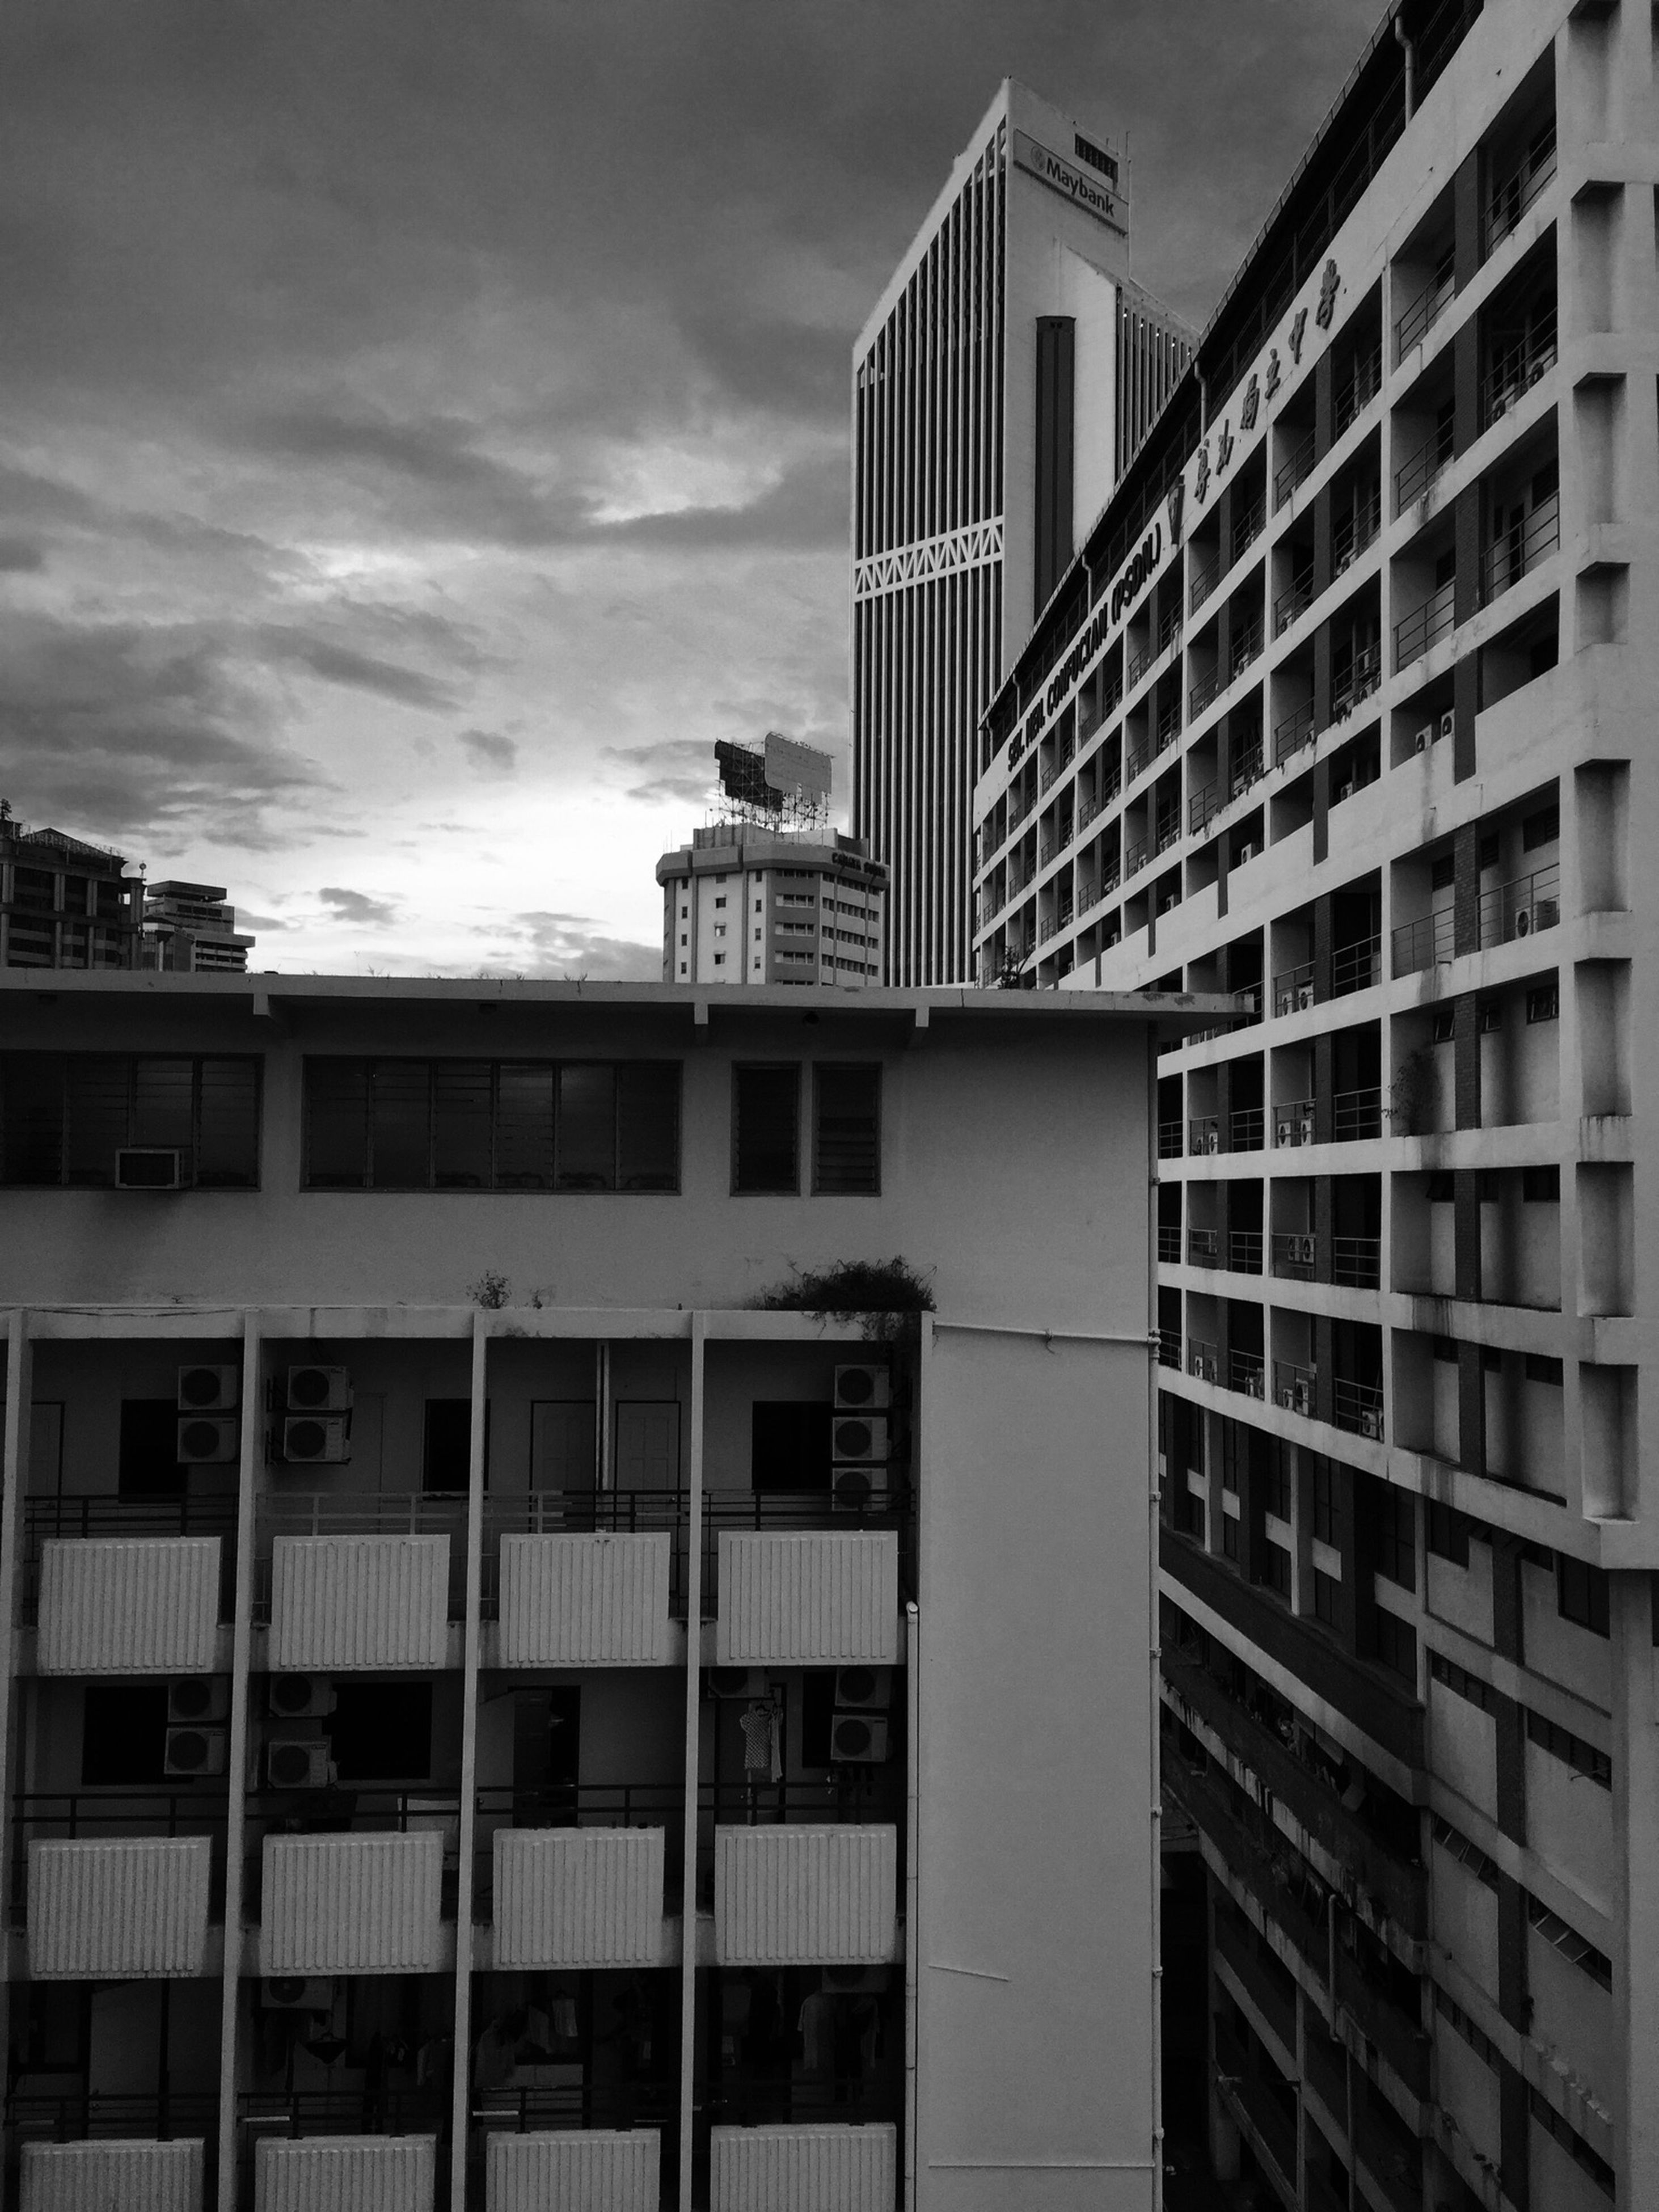 architecture, building exterior, built structure, window, building, low angle view, sky, residential building, city, residential structure, modern, day, cloud - sky, outdoors, balcony, in a row, apartment, office building, no people, cloud